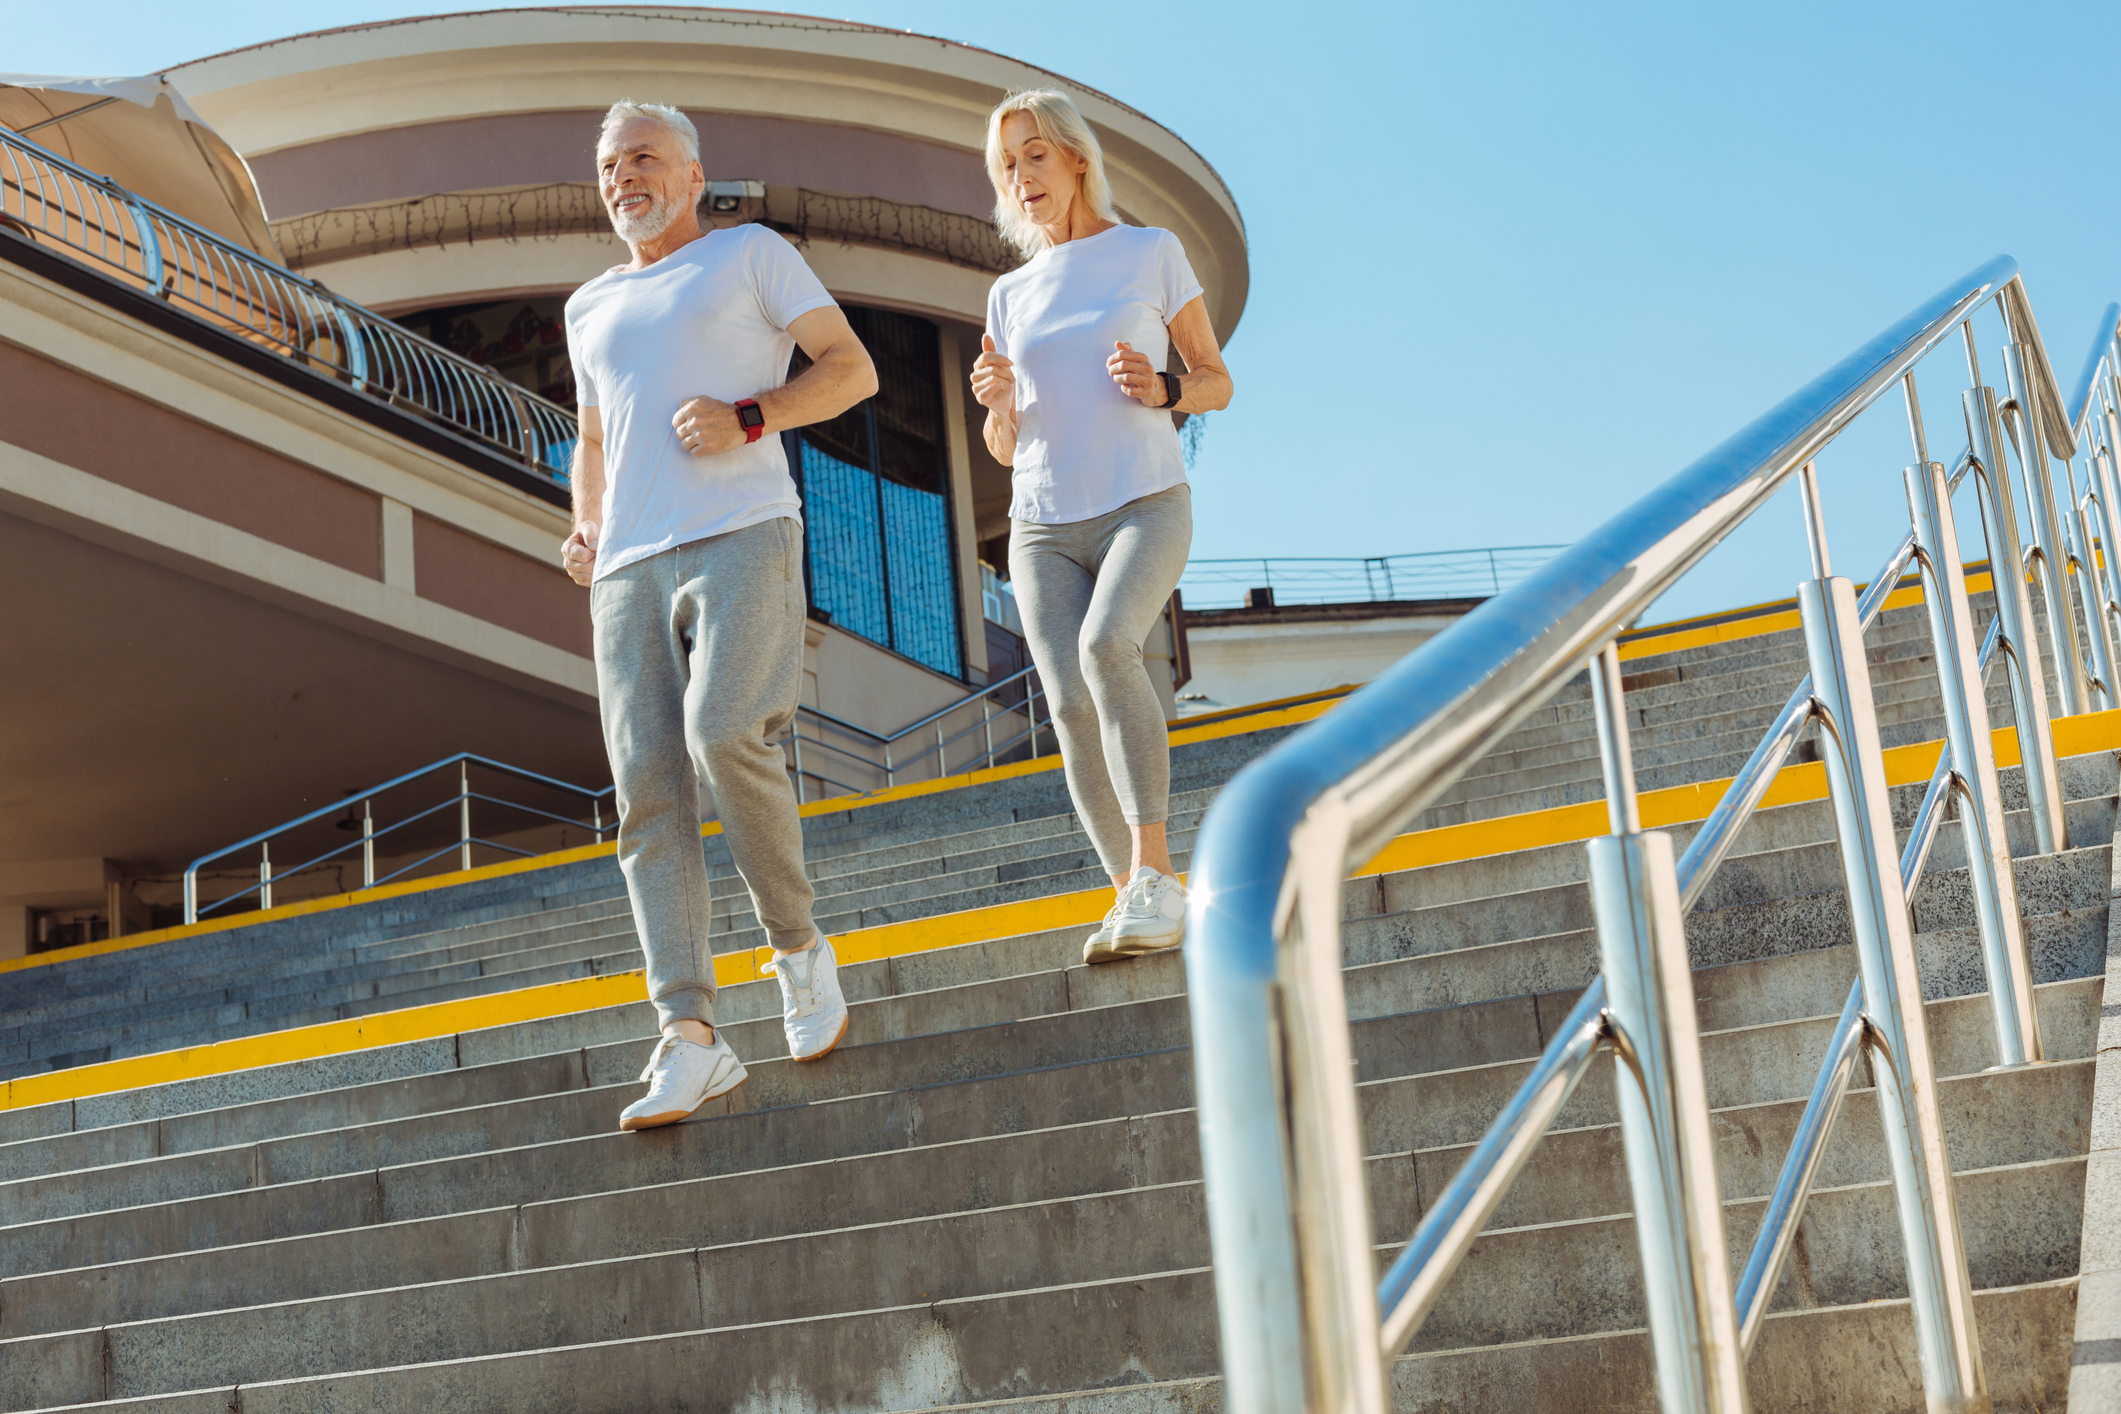 Hitting the stairs: Exercise after heart surgery